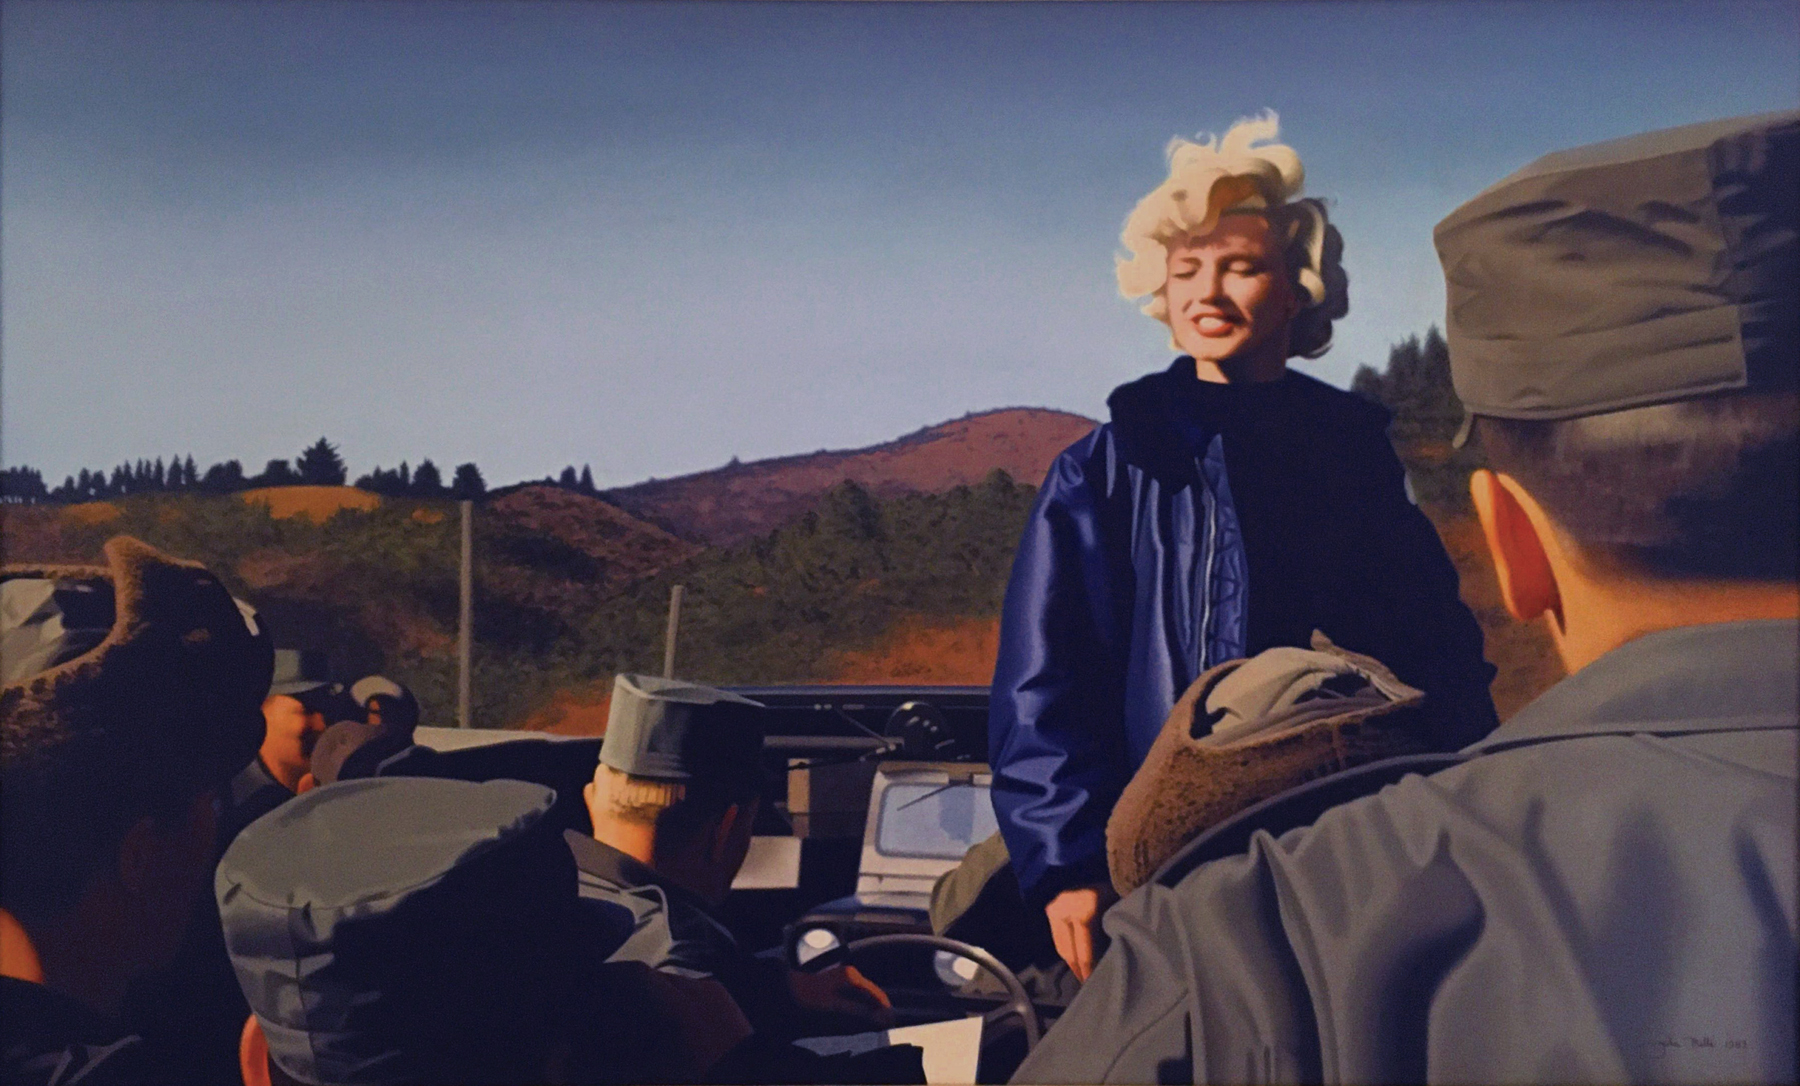 Marilyn Monroe by John Mills, Photorealism artist and car ad illustrator as seen on American Pickers.